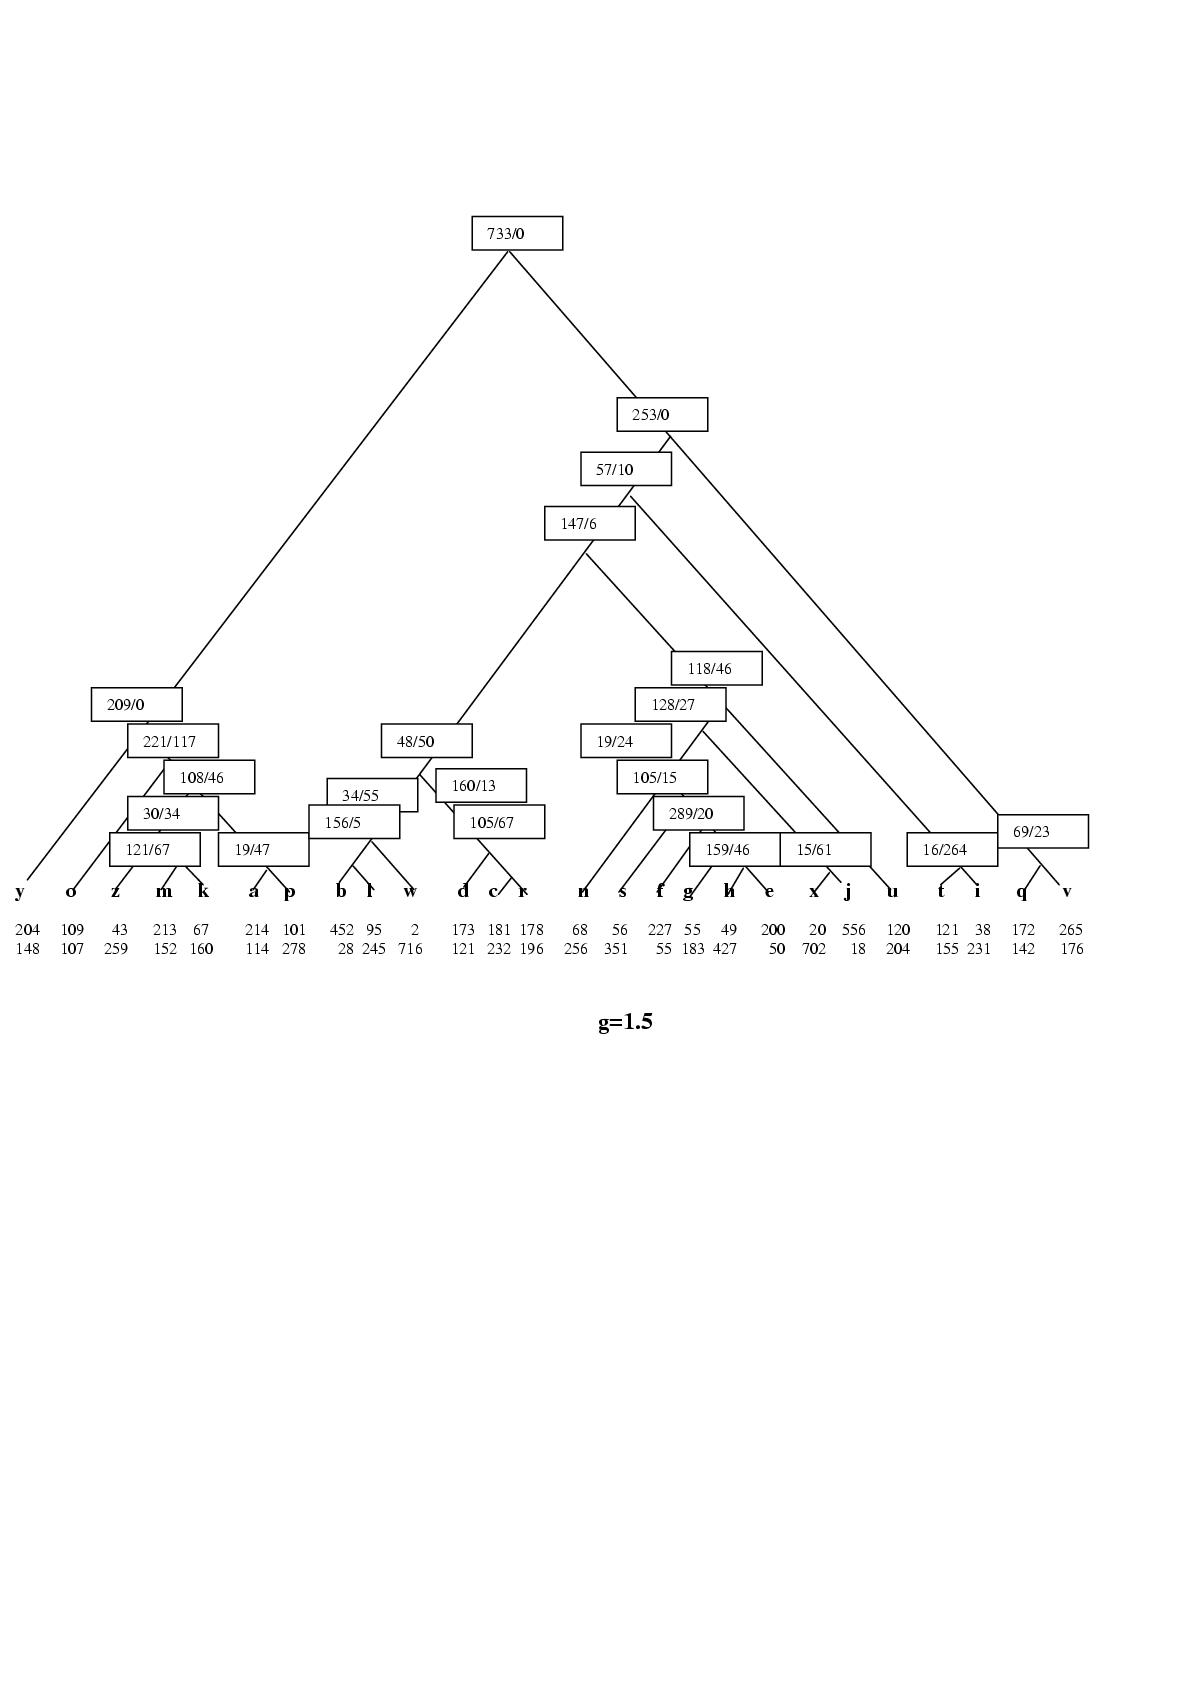 https://static-content.springer.com/image/art%3A10.1186%2F1471-2148-3-2/MediaObjects/12862_2002_Article_36_Fig17_HTML.jpg